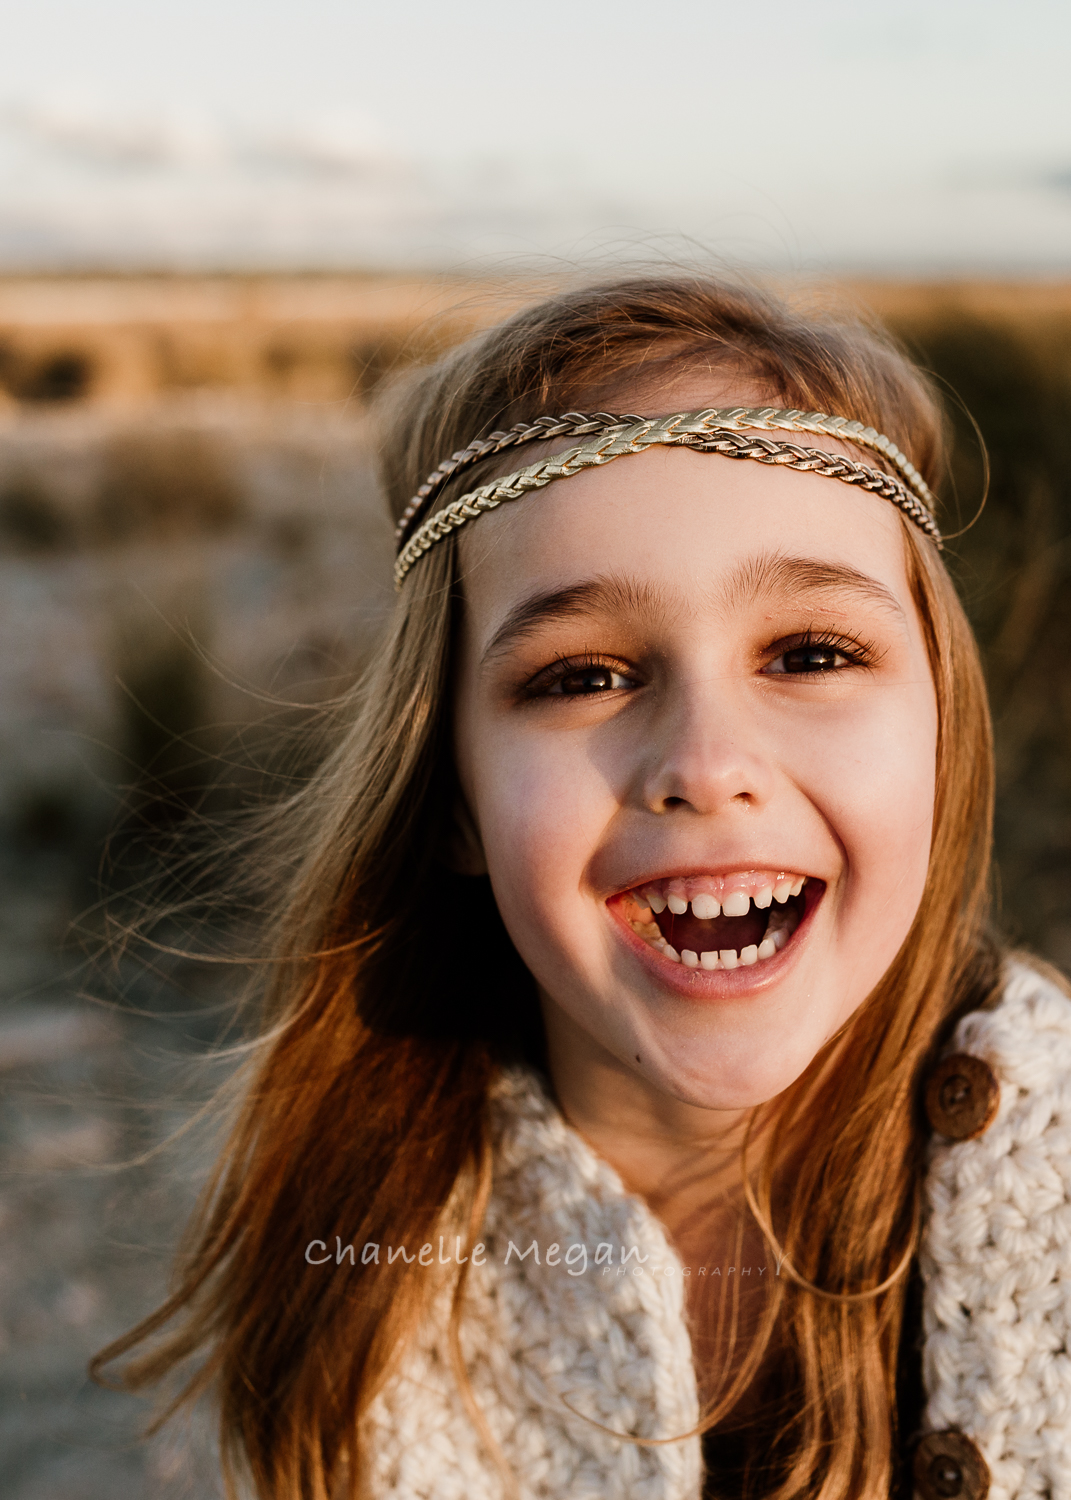 Chanelle Megan Photography strives to capture joyous photos of your children